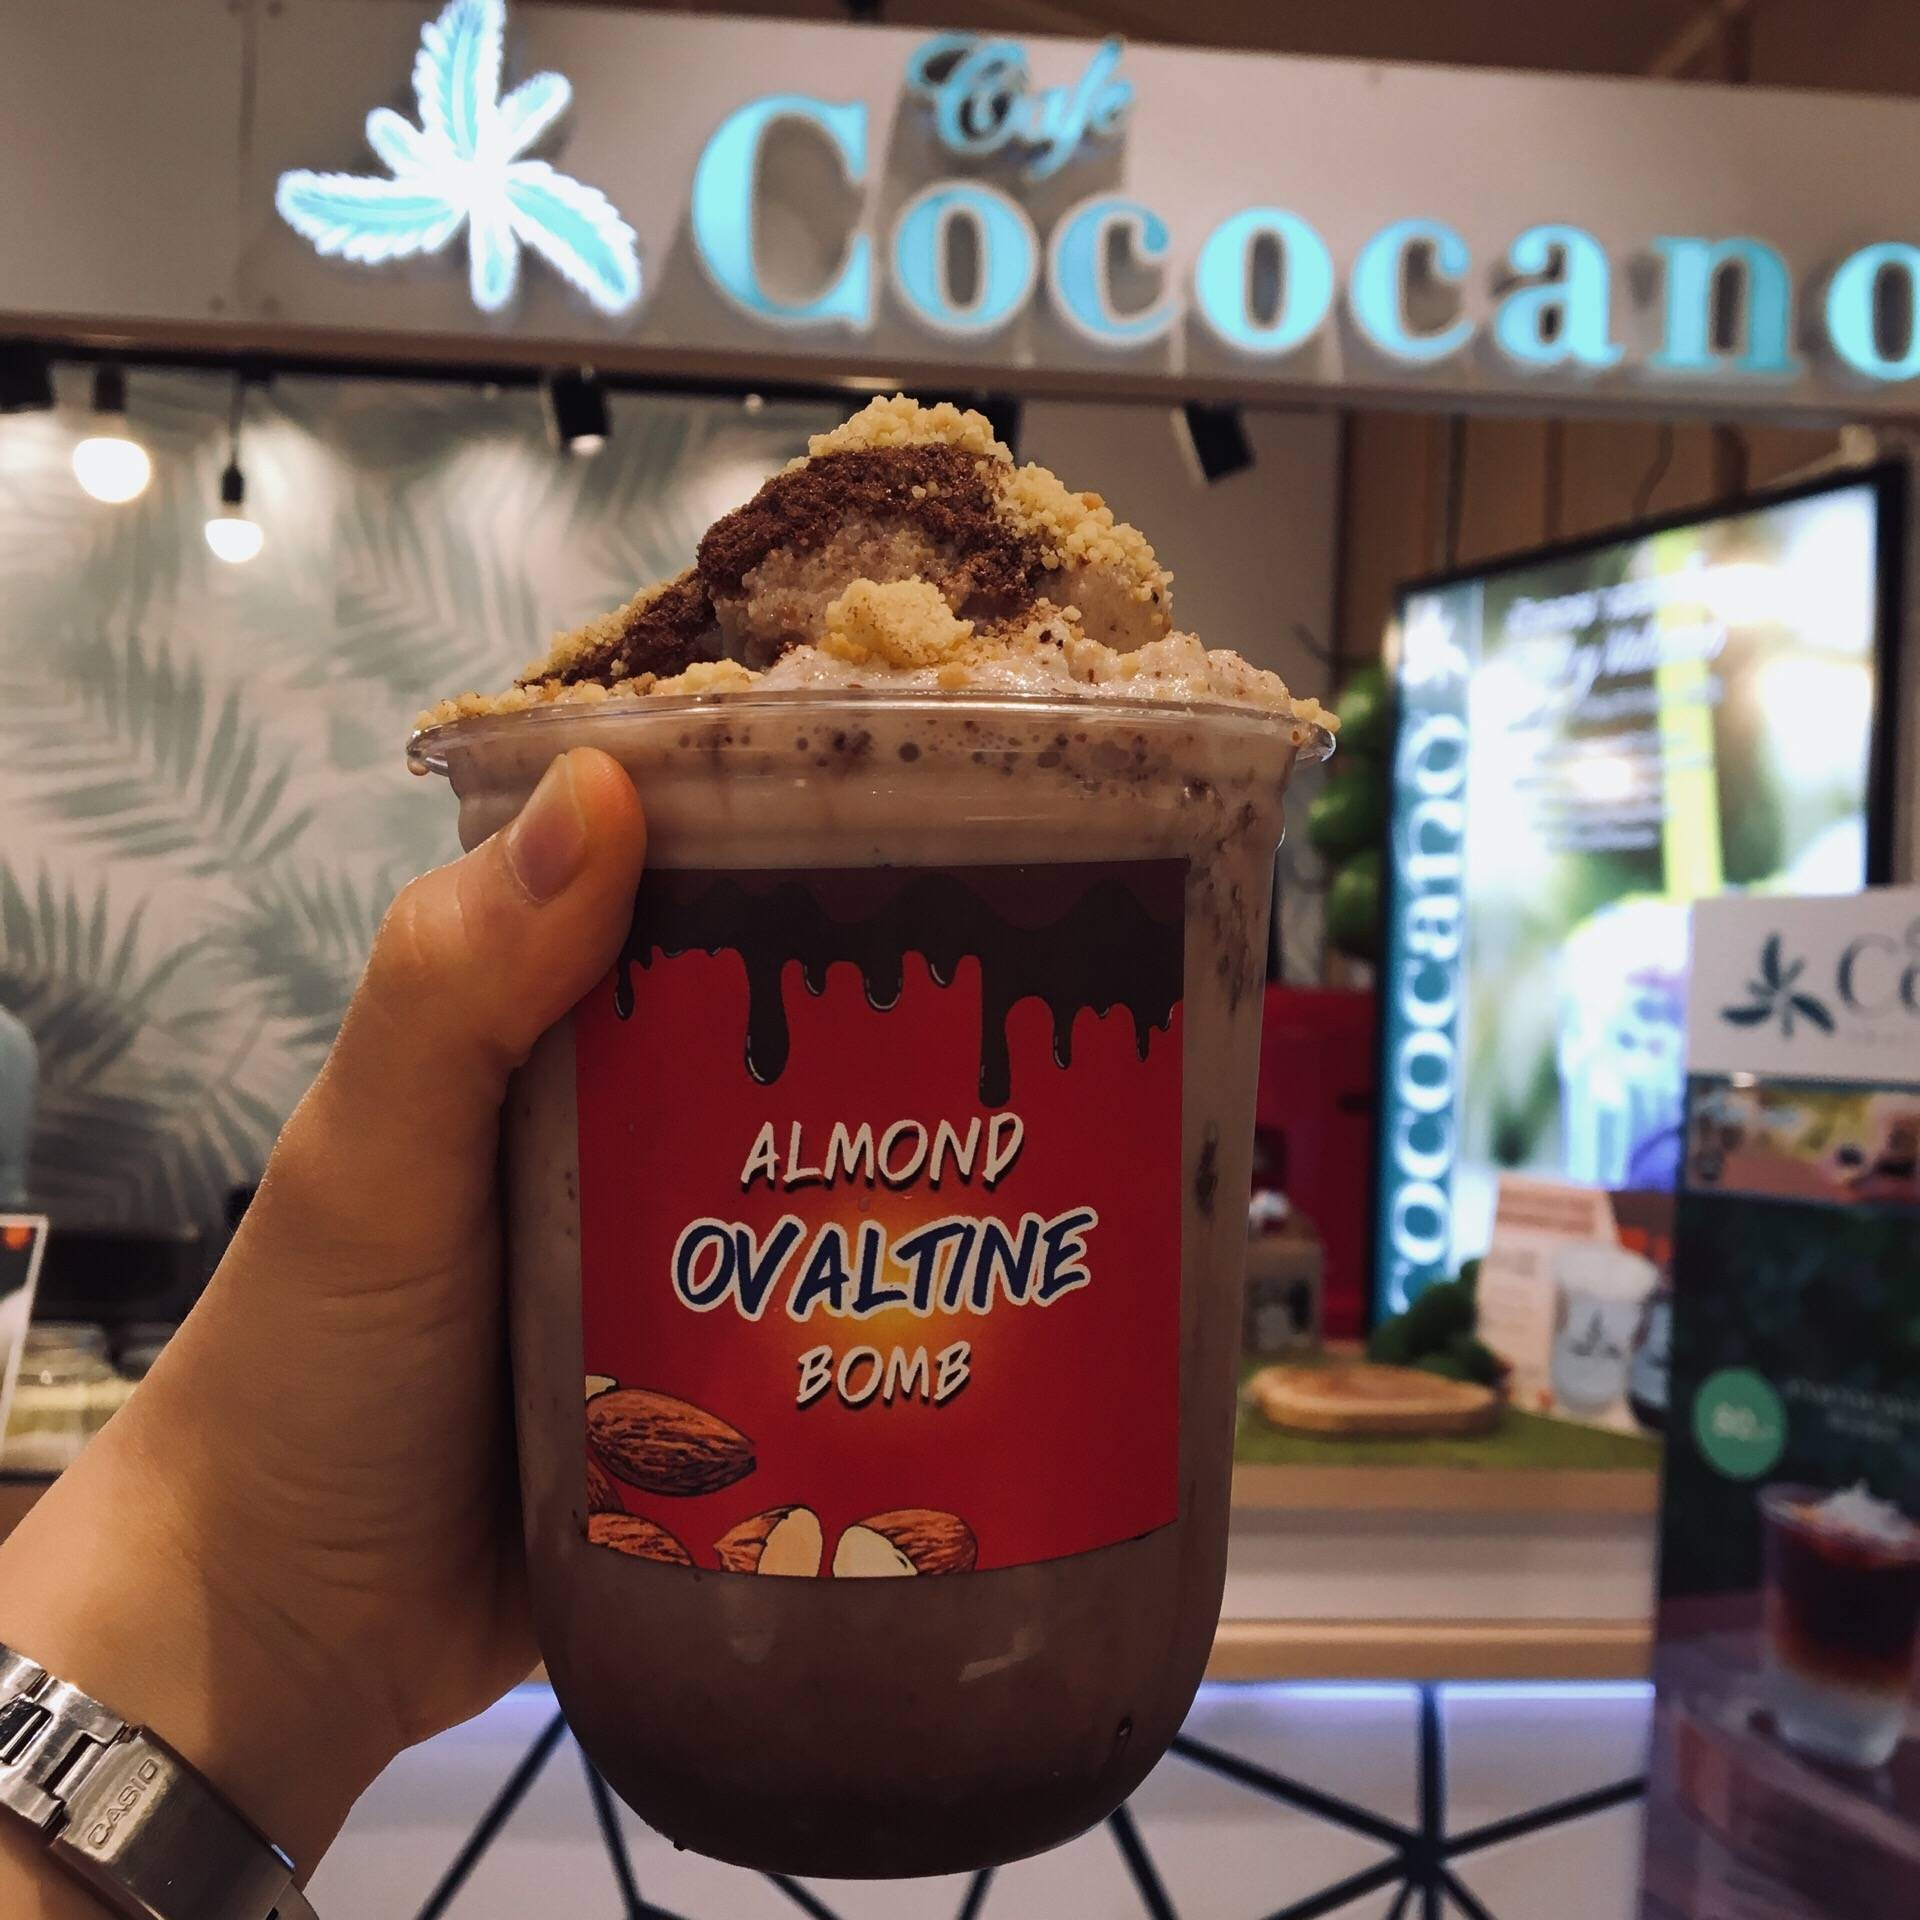 Cafe Cococano centralwOrld